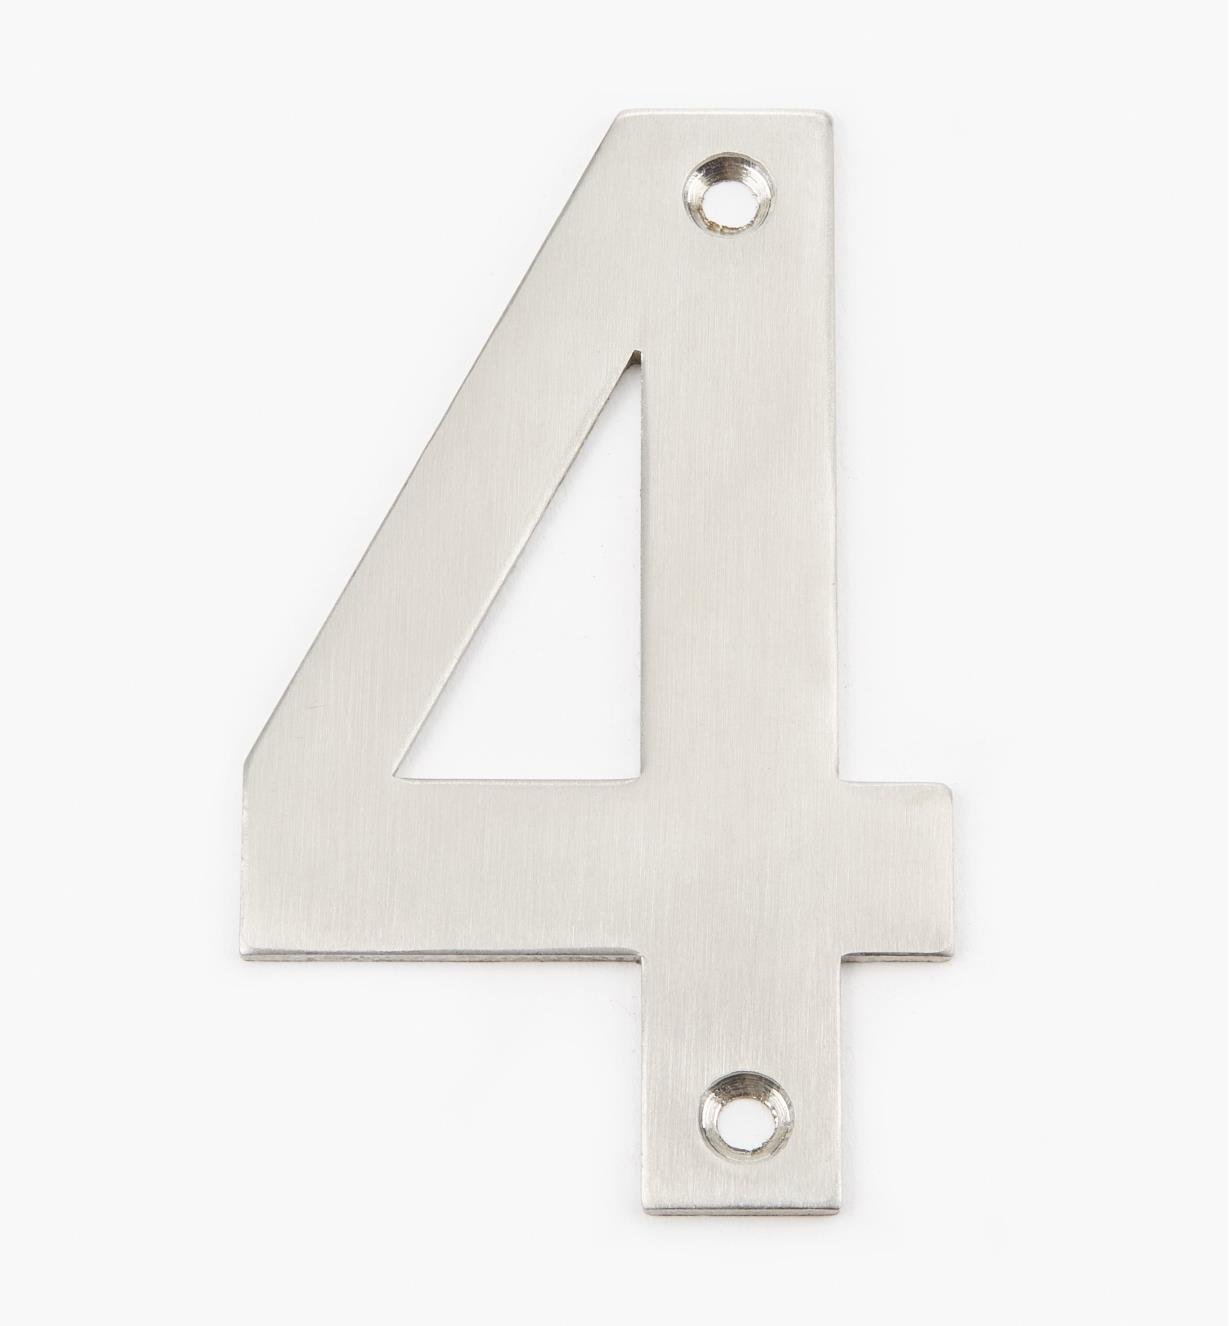 00W0884 - 100mm Stainless-Steel House Number - 4